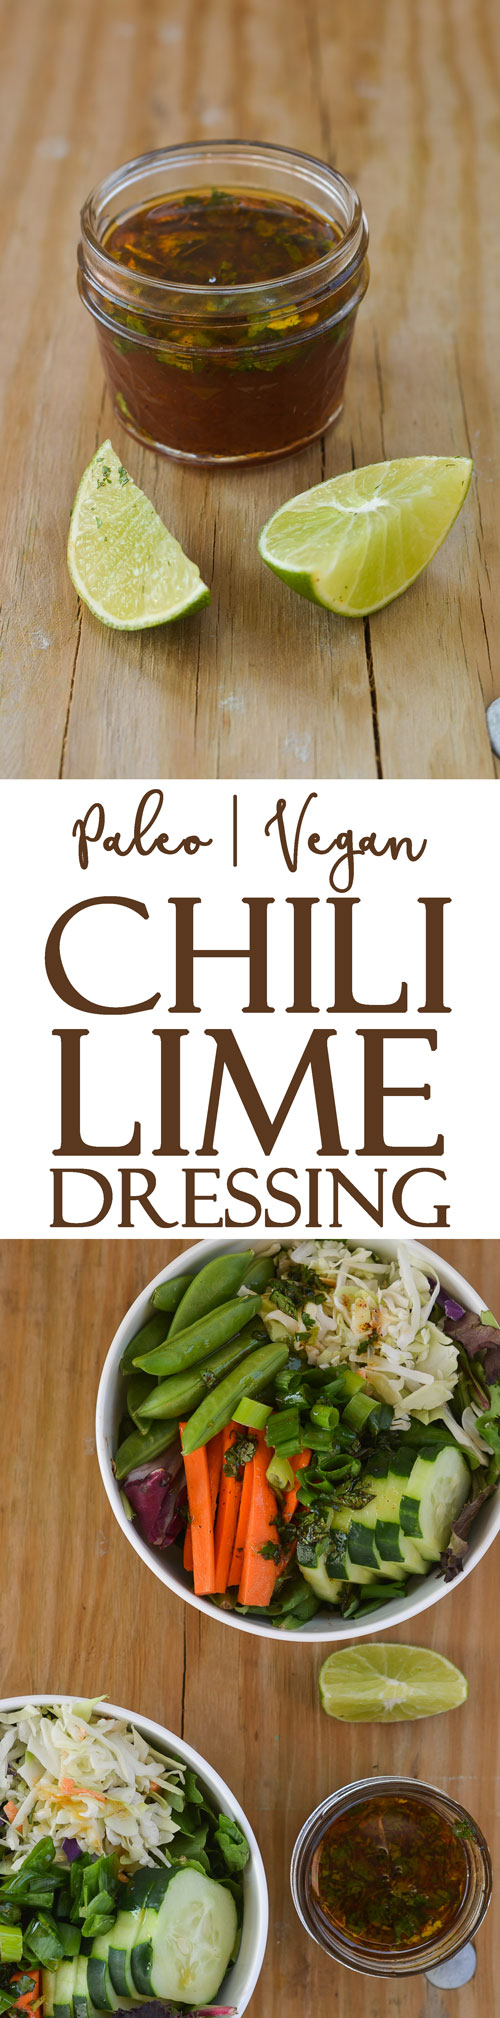 A sweet and spicy chili lime vinaigrette that is perfect for everybody from the hardcore vegan to the dedicated Paleo person. Gluten-free, grain-free, dairy-free, refined sugar-free, low-carb, Whole30.